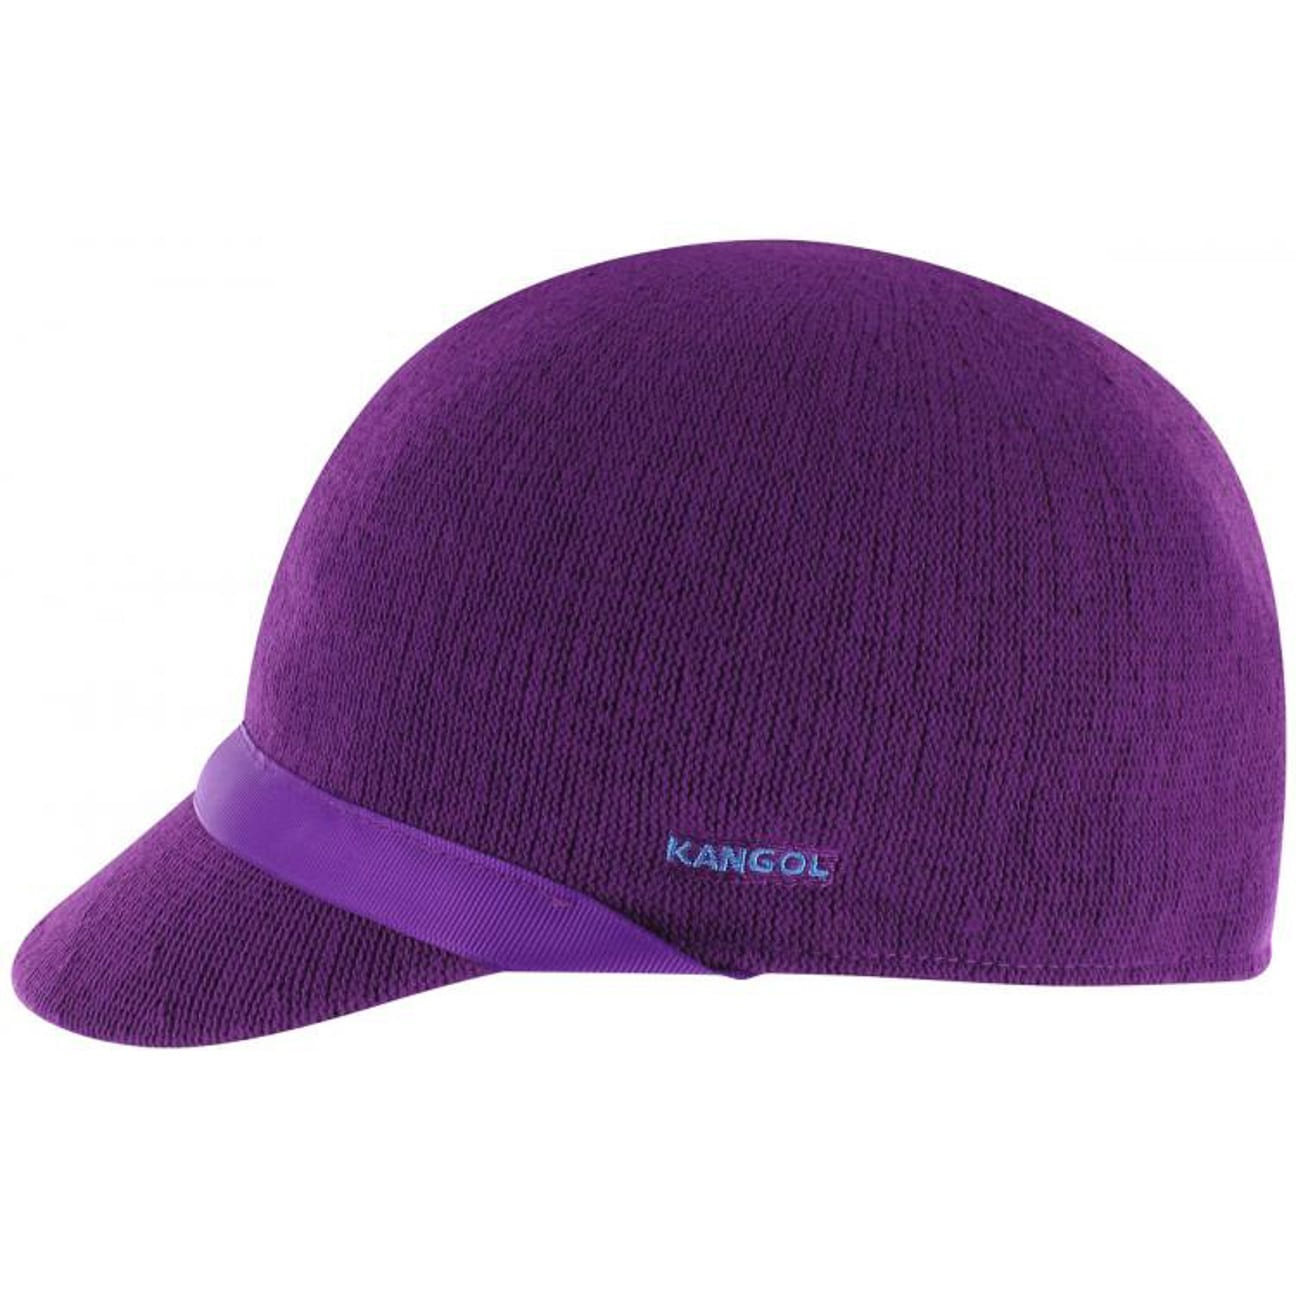 Kangol Hats For Girls